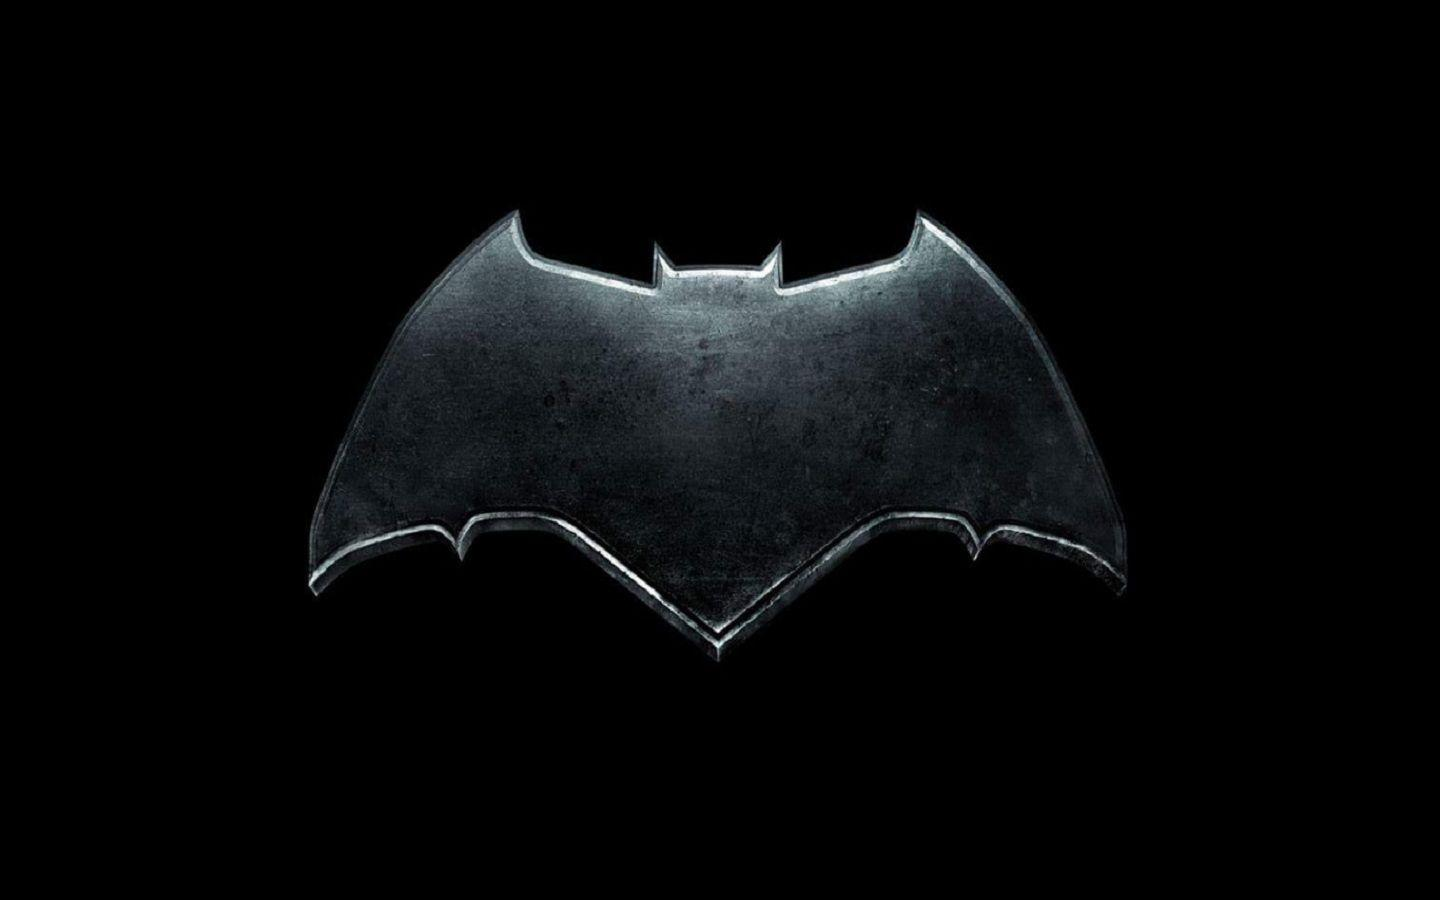 Batman movie Ben Affleck logo wallpapers Wallpapers and Backgrounds